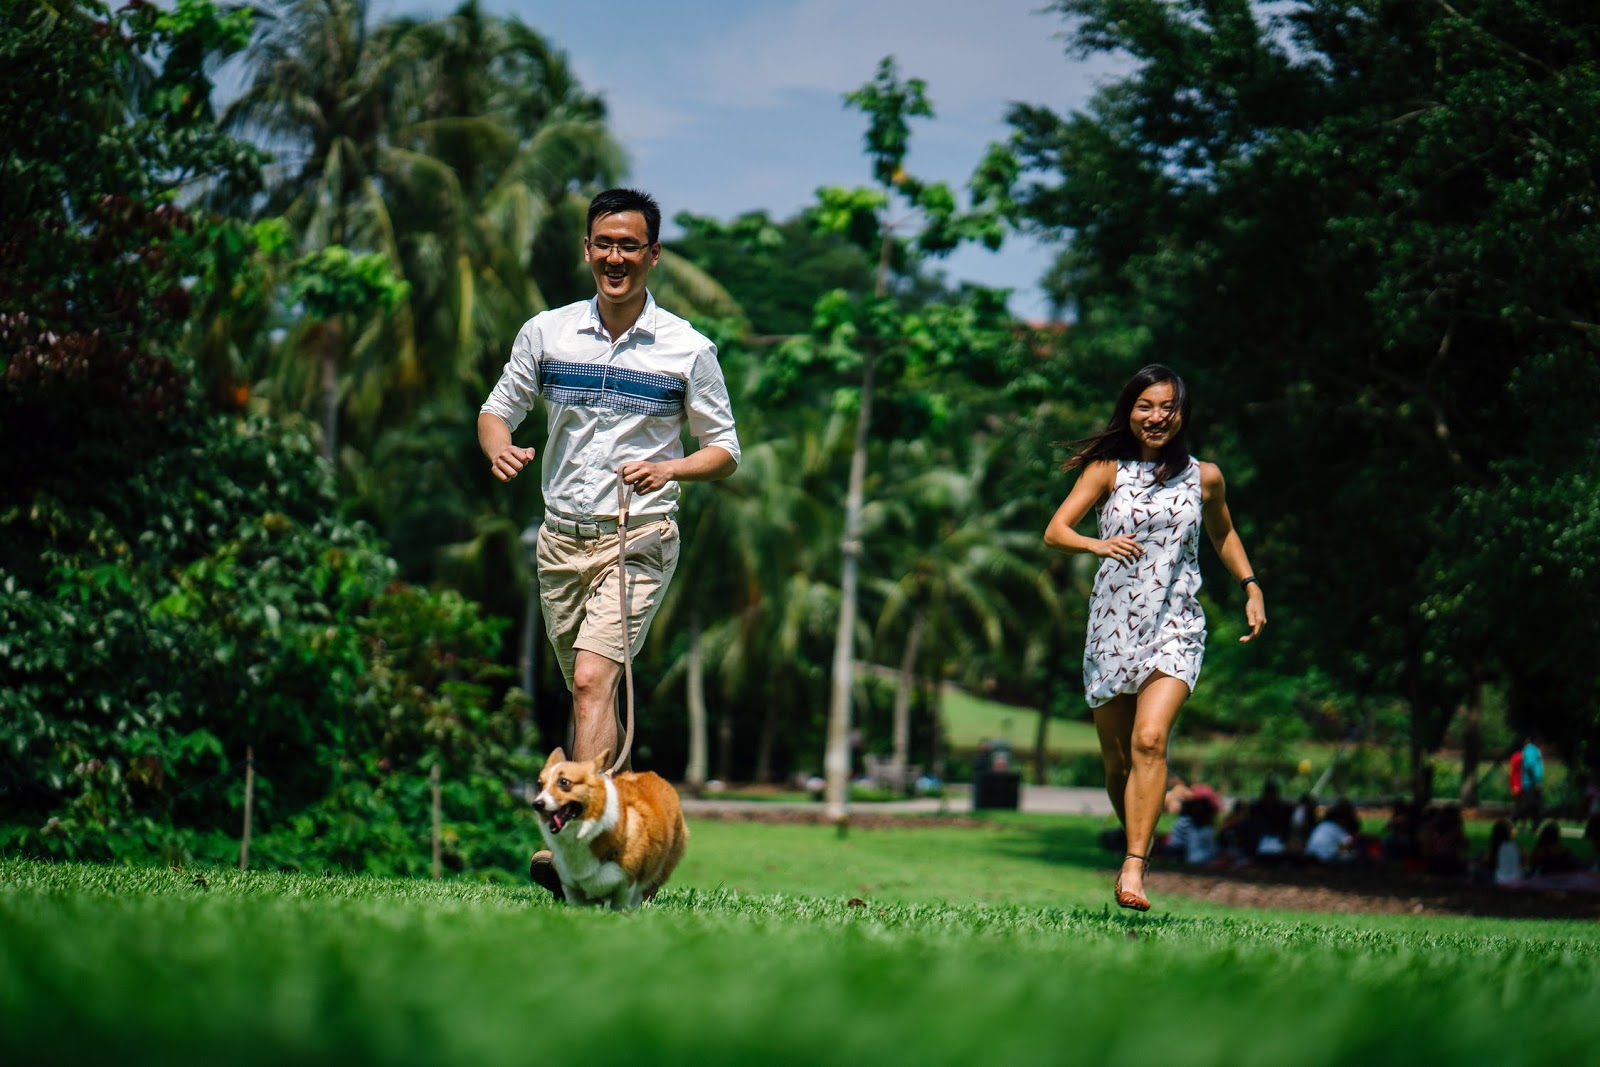 A man and woman running outdoors with their dog.